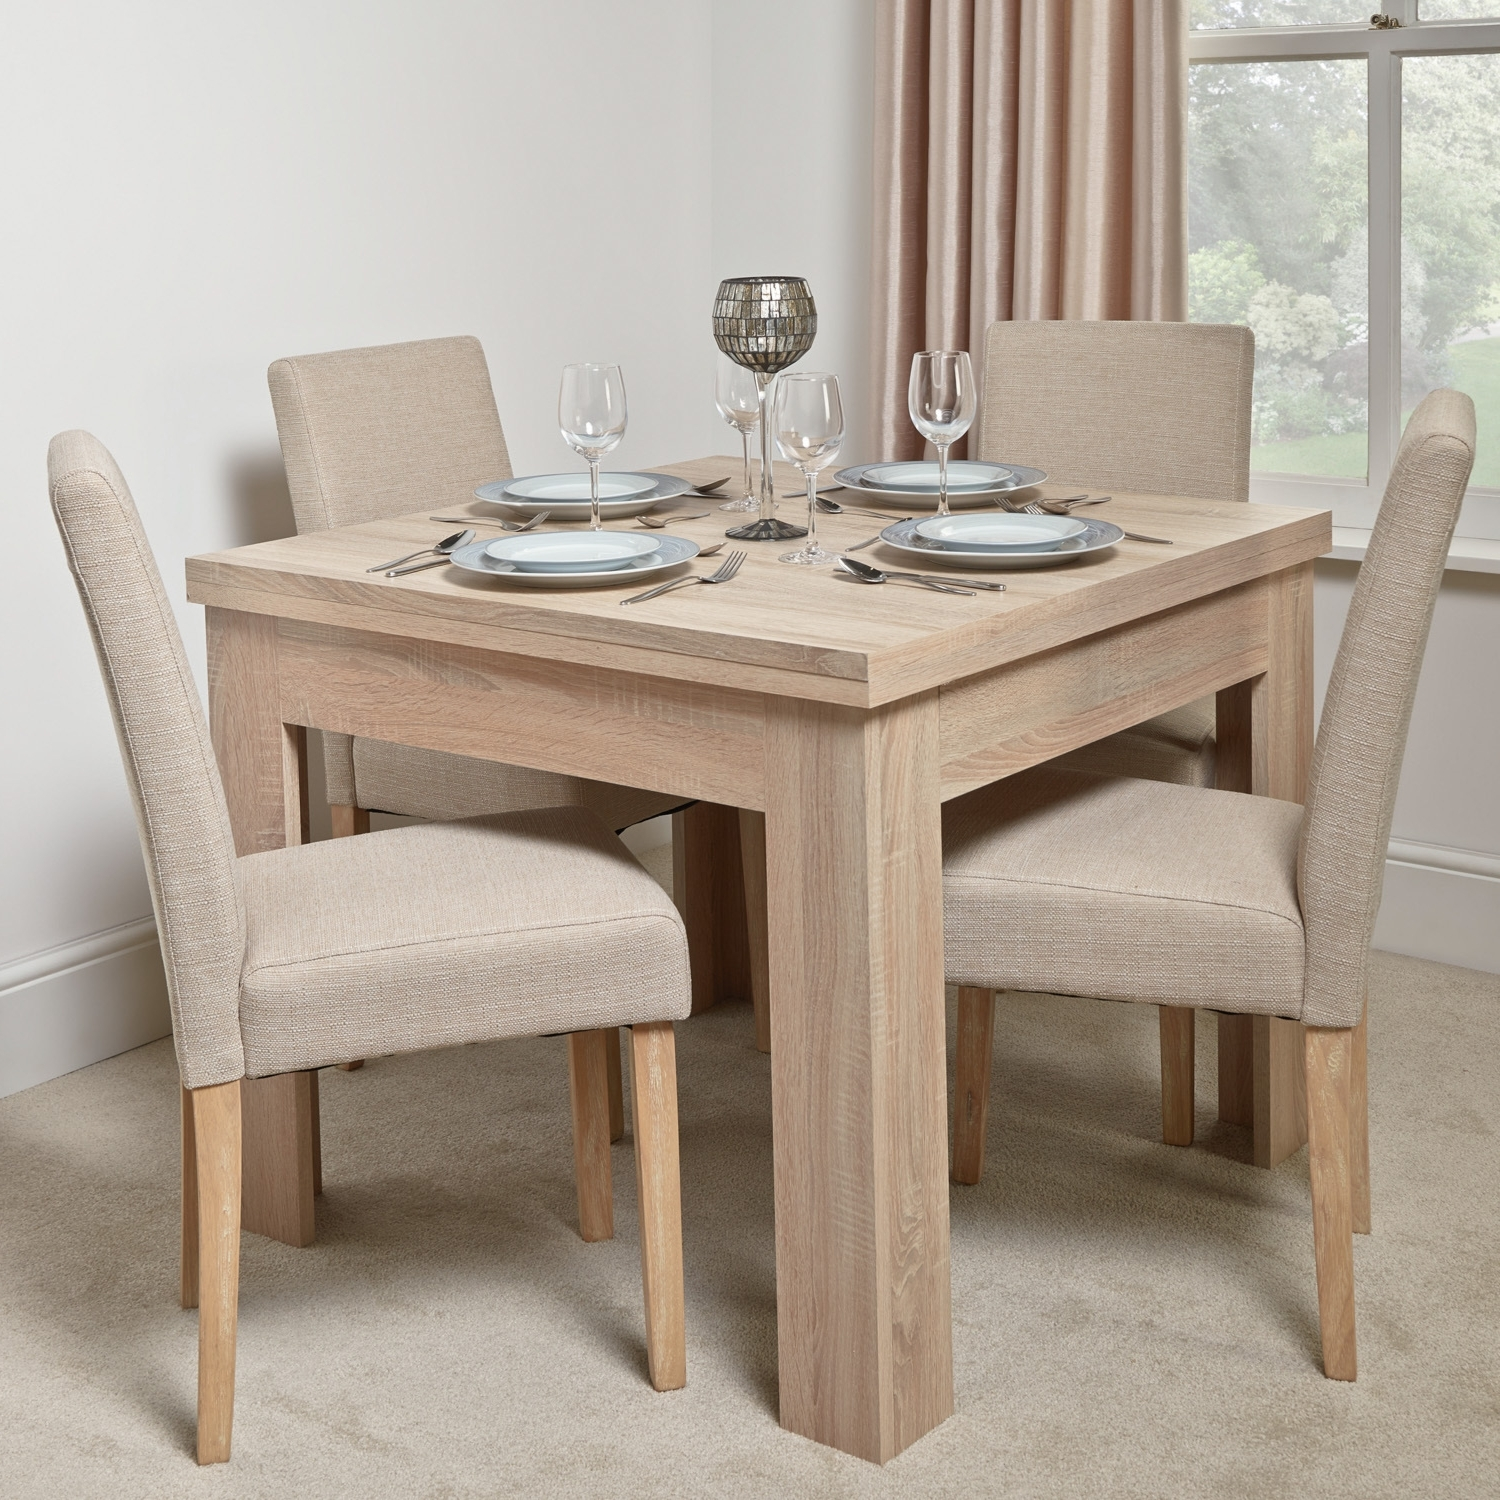 Extending Dining Tables Sets For Well Known Calpe Flip Extending Dining Table (View 3 of 25)